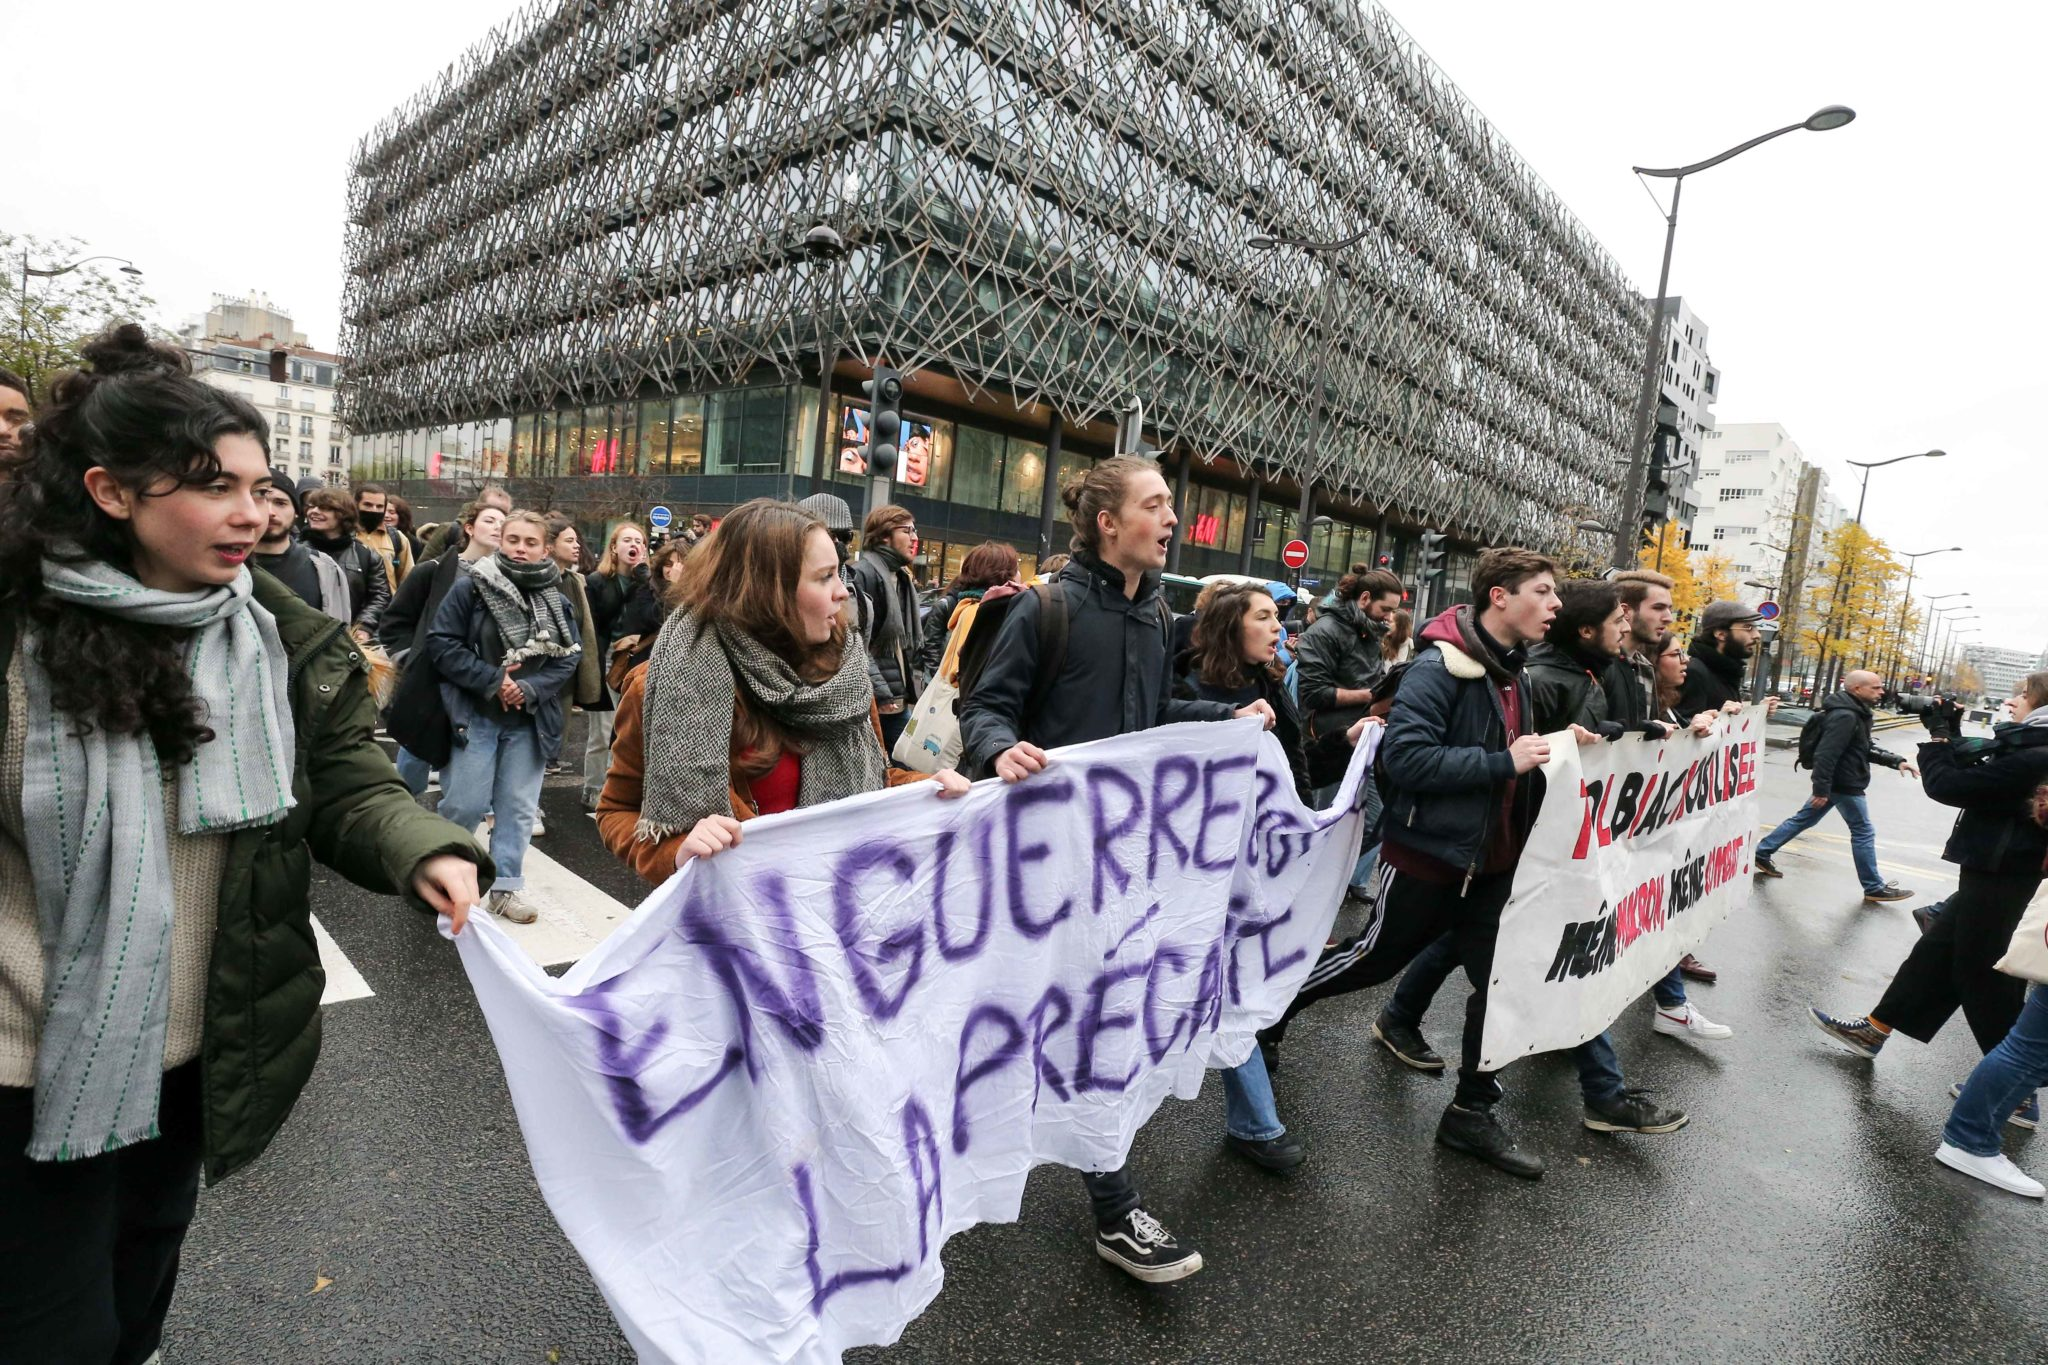 French students hold  banners reading « At war against precariousness » and « Tolbiac mobilized » as they demonstrate against their precariousness near the University of Paris-1 Tolbiac, on November 26, 2019, after the suicide attempt of a 22-year-old